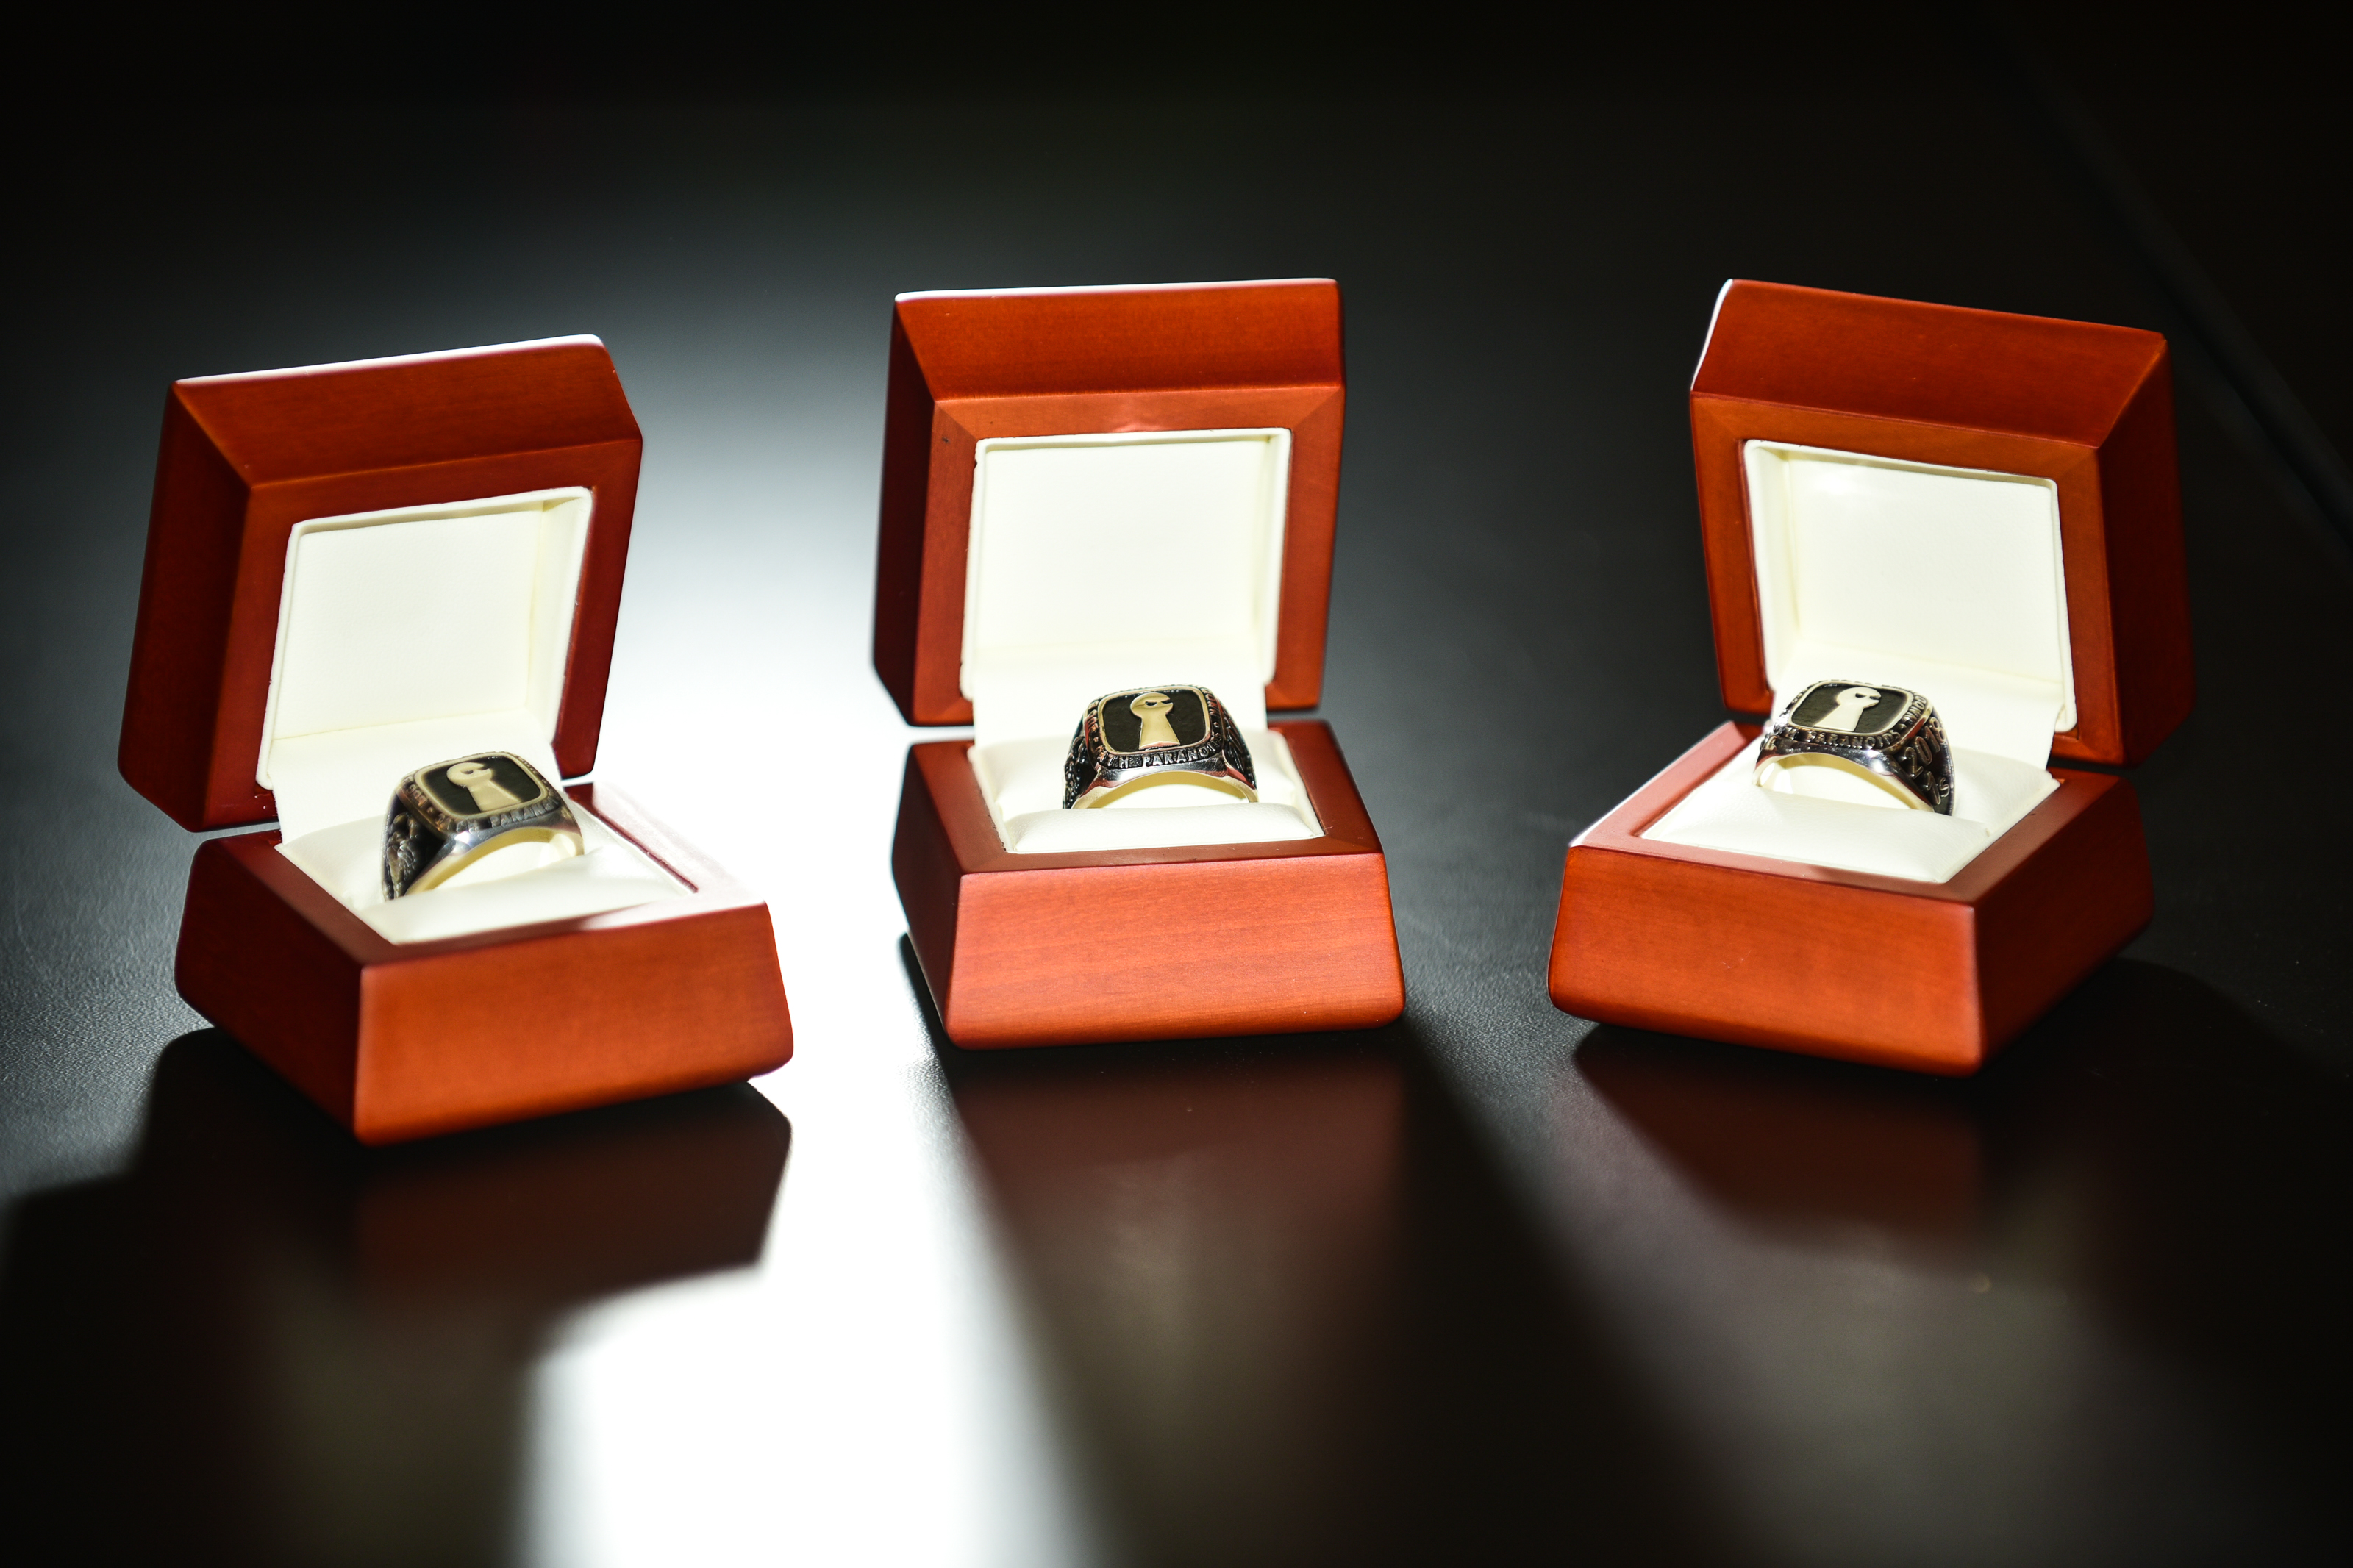 Oath's custom-made h1-212 champion rings